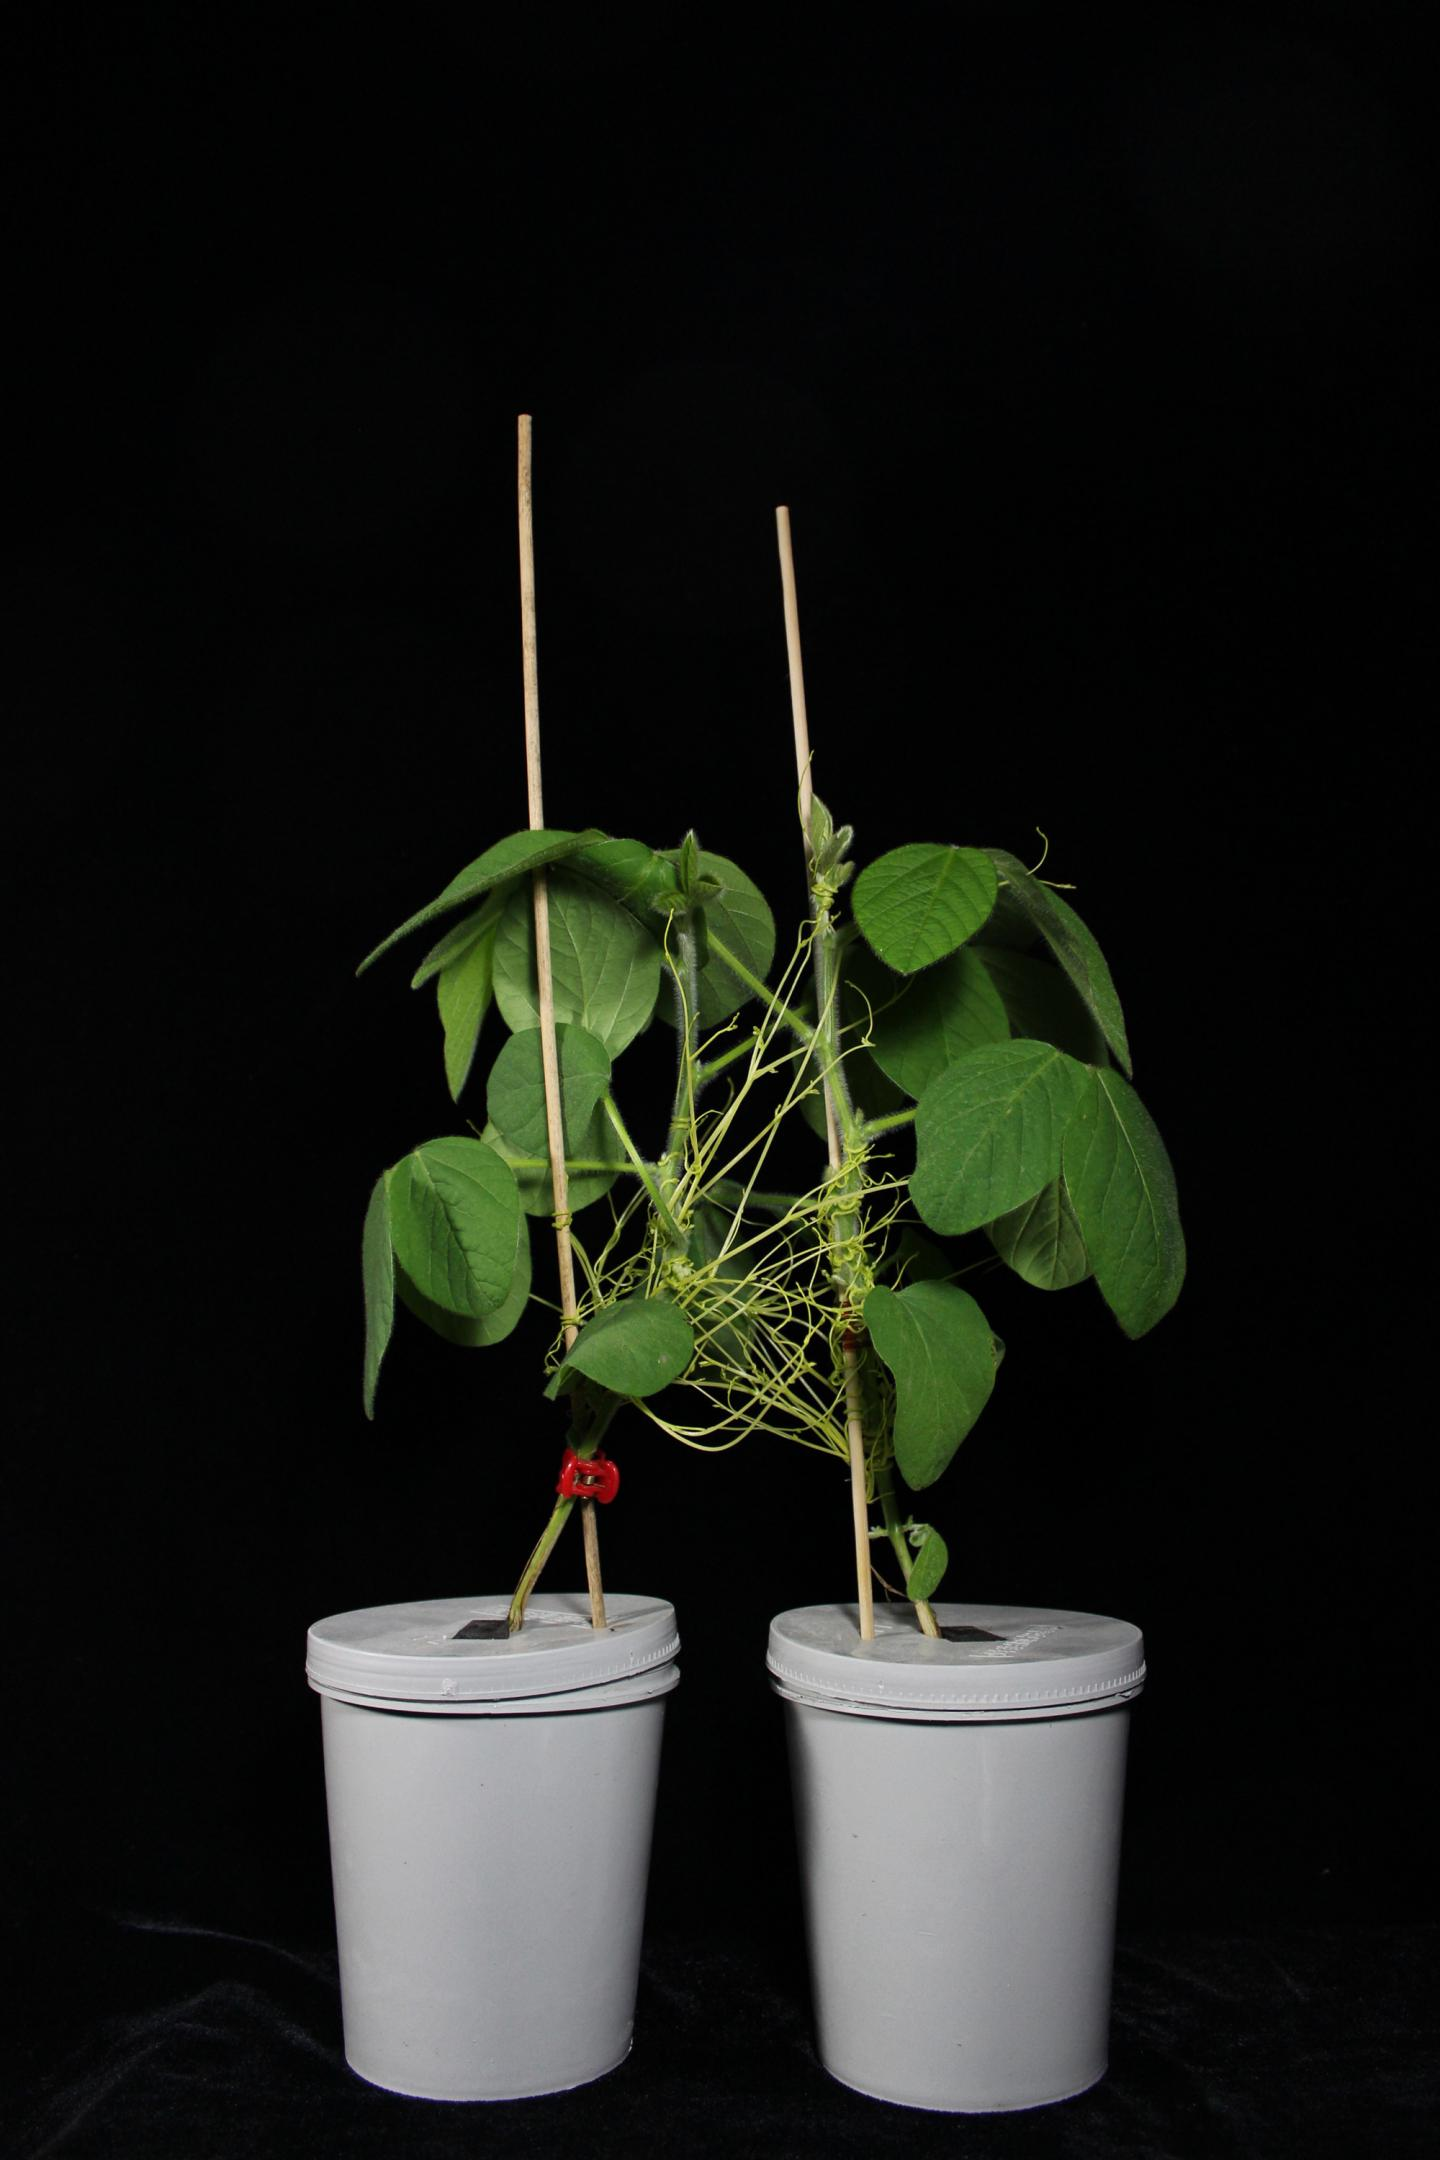 Parasitic <i>Cuscuta australis</i> Plant Connecting Two Soybean Plants